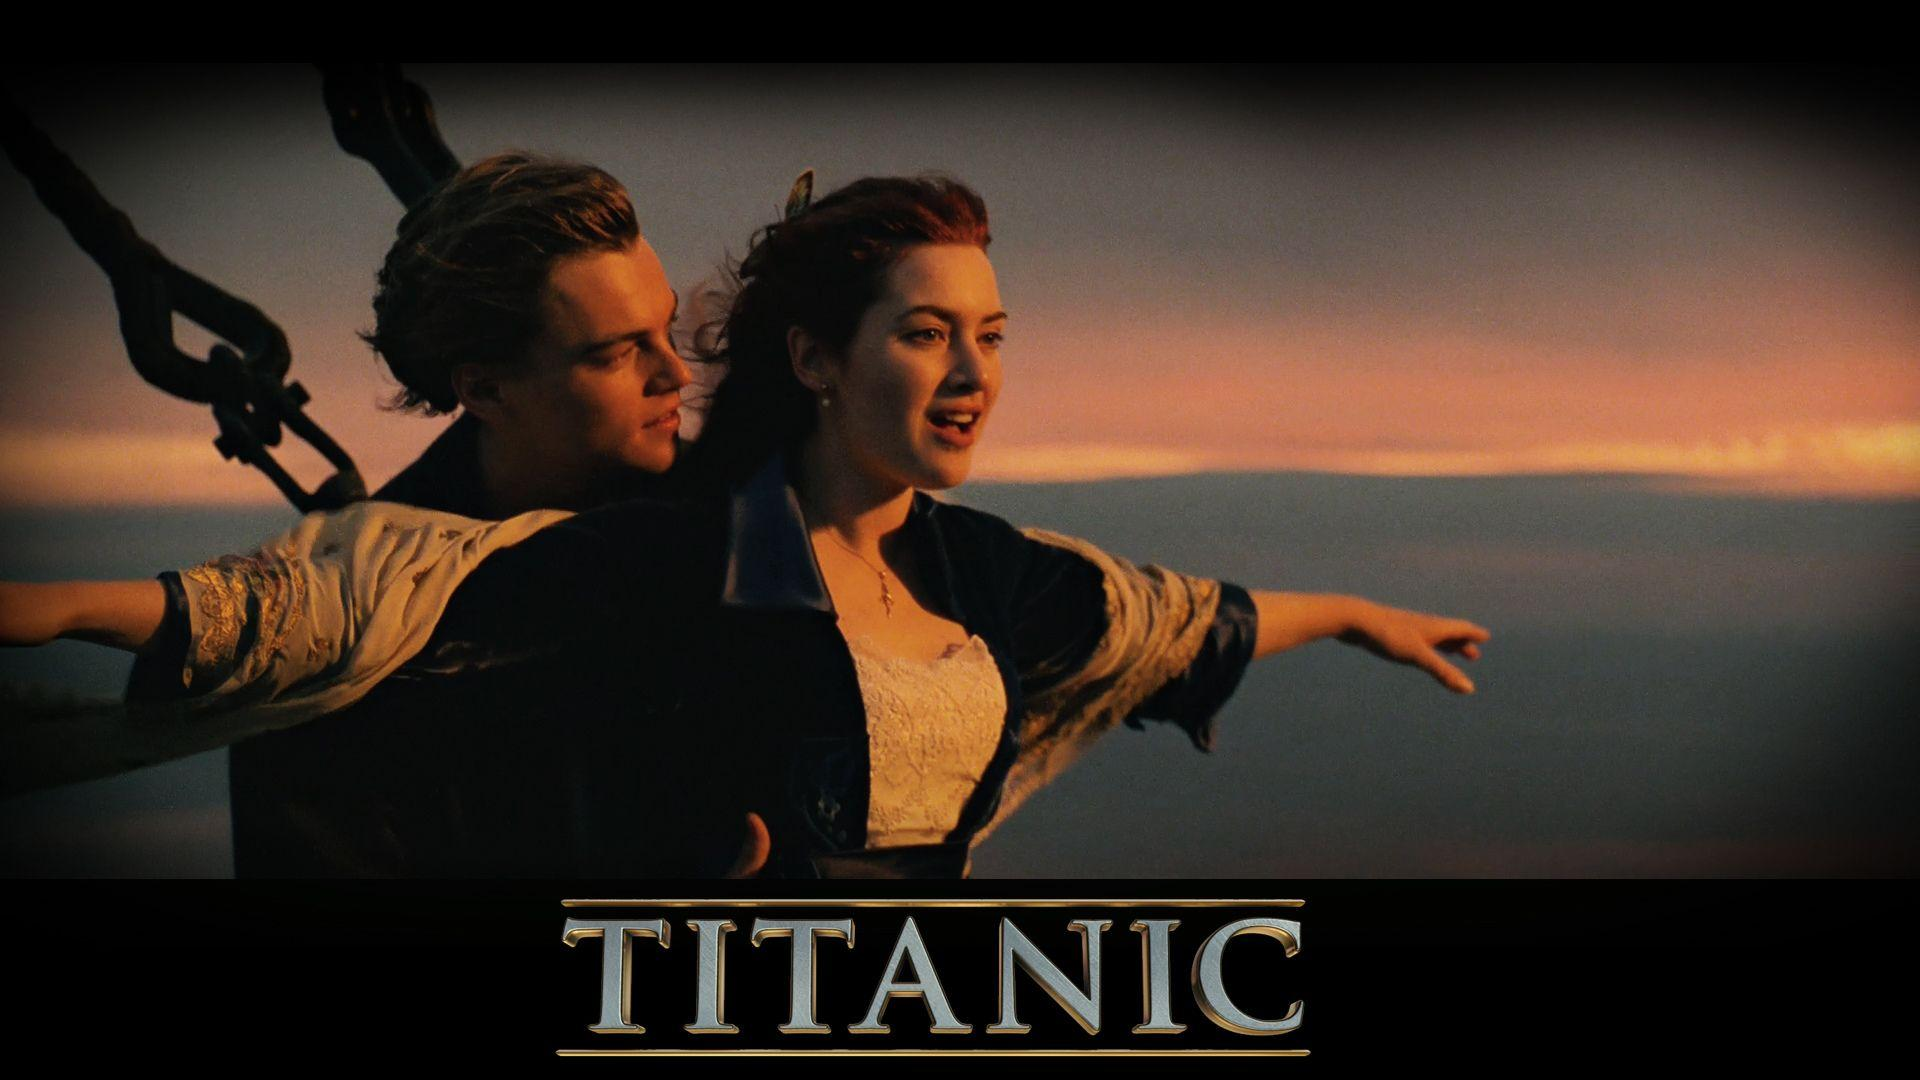 19 Titanic HD Wallpapers | Backgrounds - Wallpaper Abyss